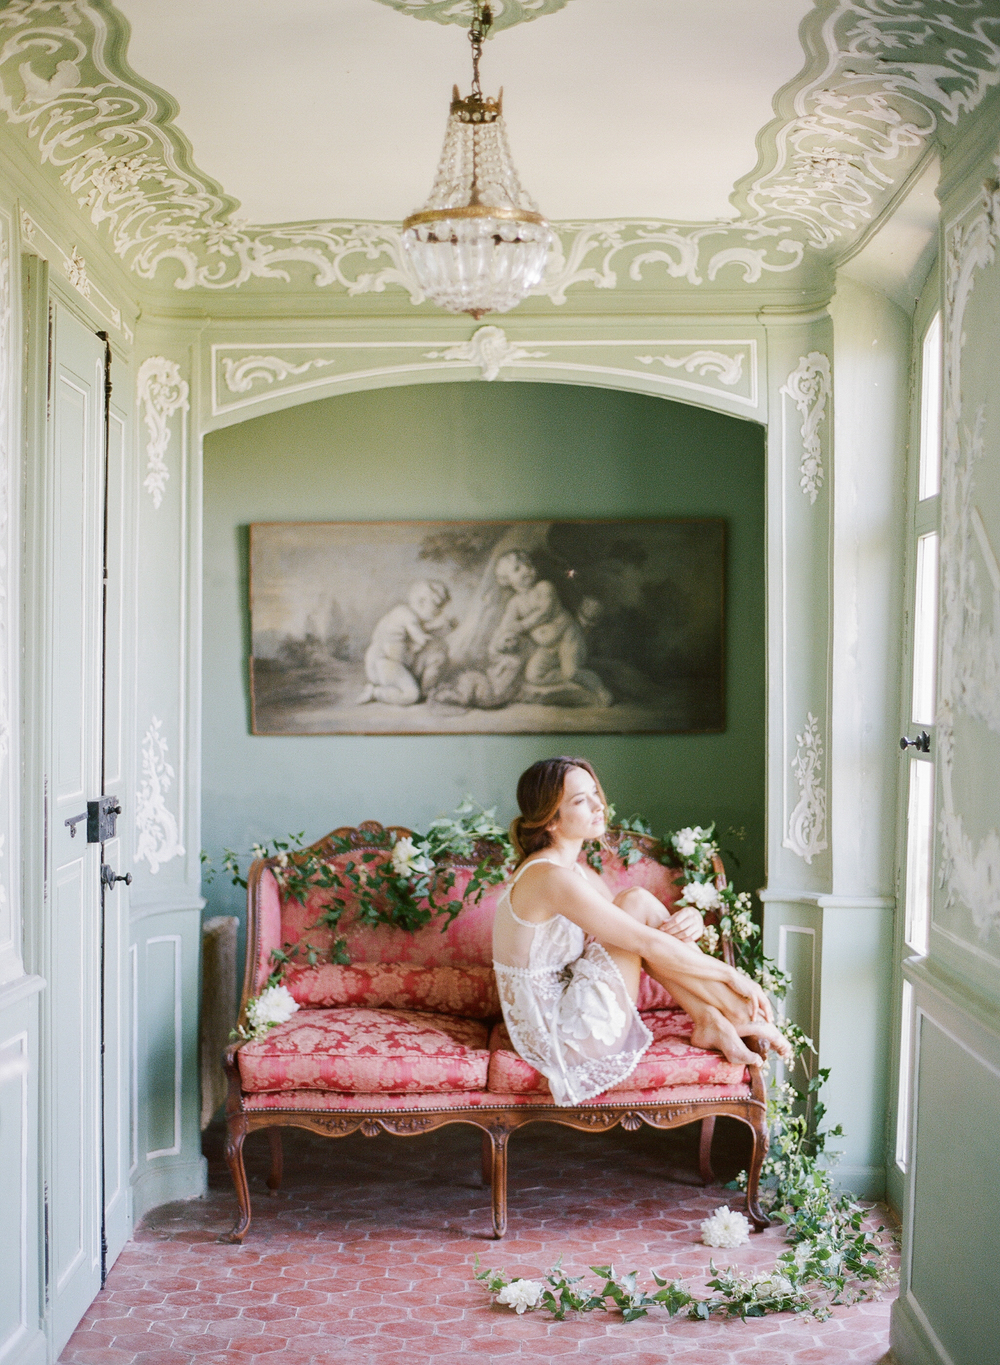 A boudoir session in an ornate room within the chateau with the bride before the wedding; photo by Sylvie Gil